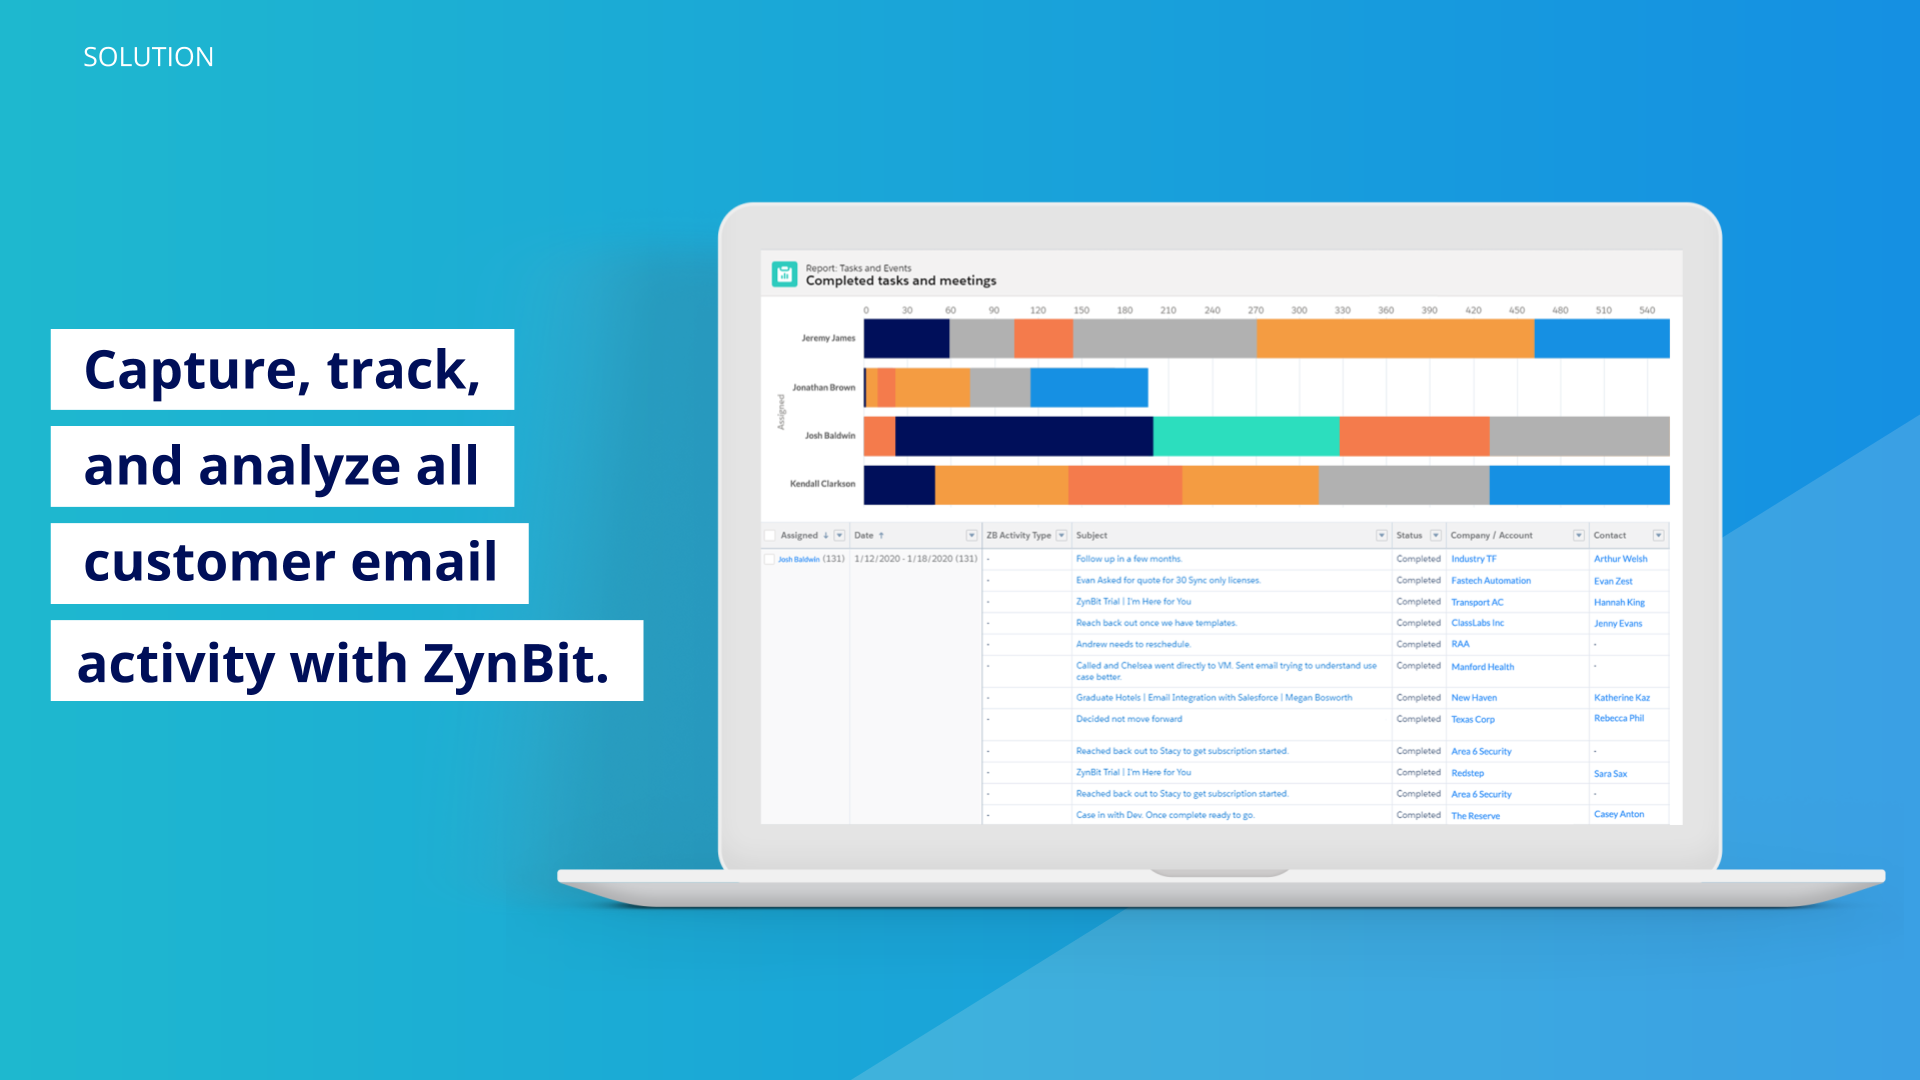 capture-track-and-analyze-all-customer-email-activity-with-ZynBit